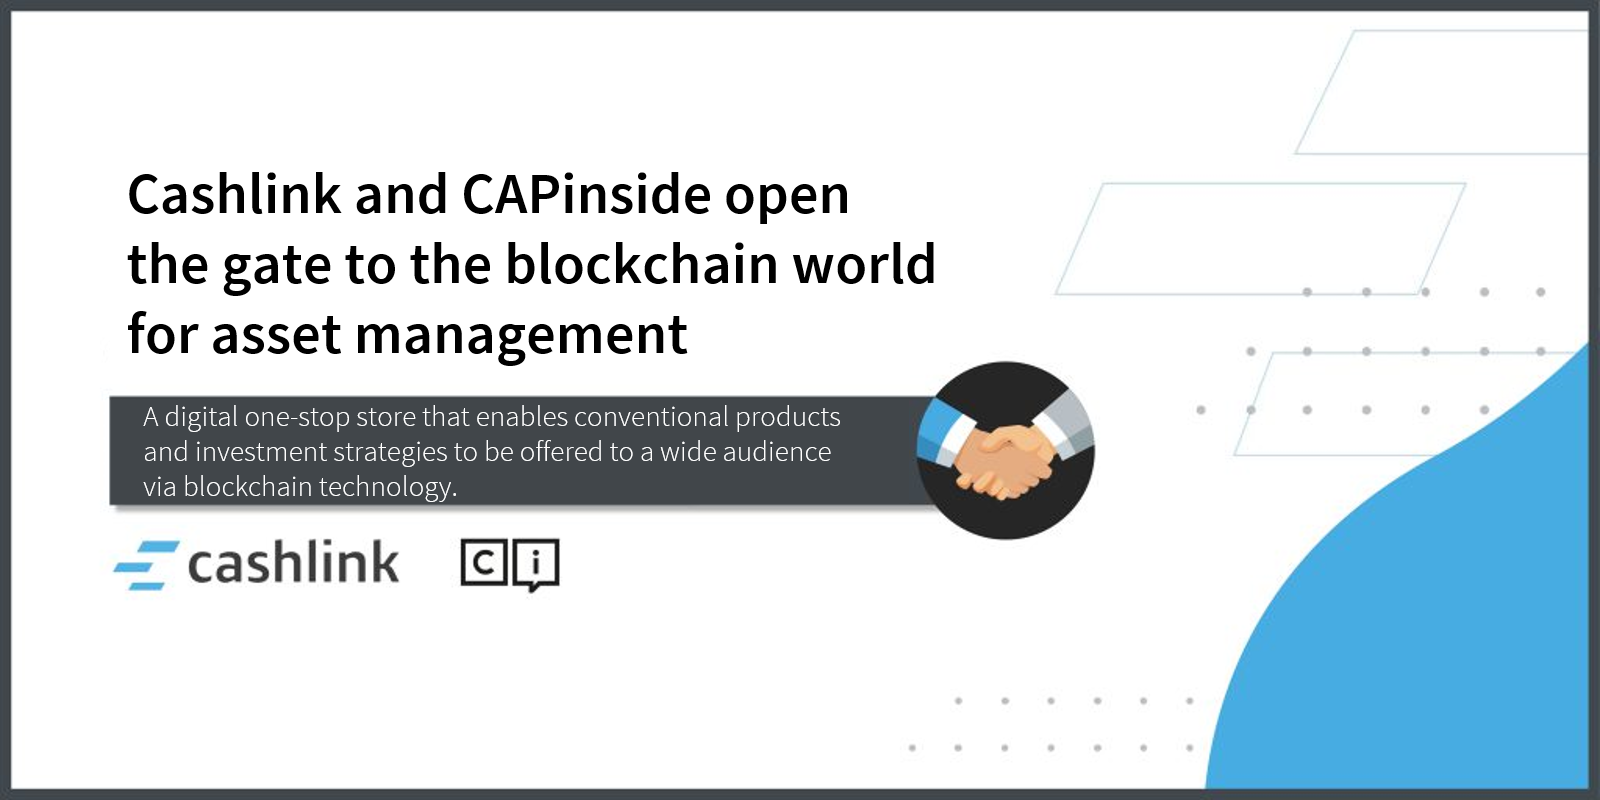 Cashlink and CAPinside open the door to the blockchain world for asset managers